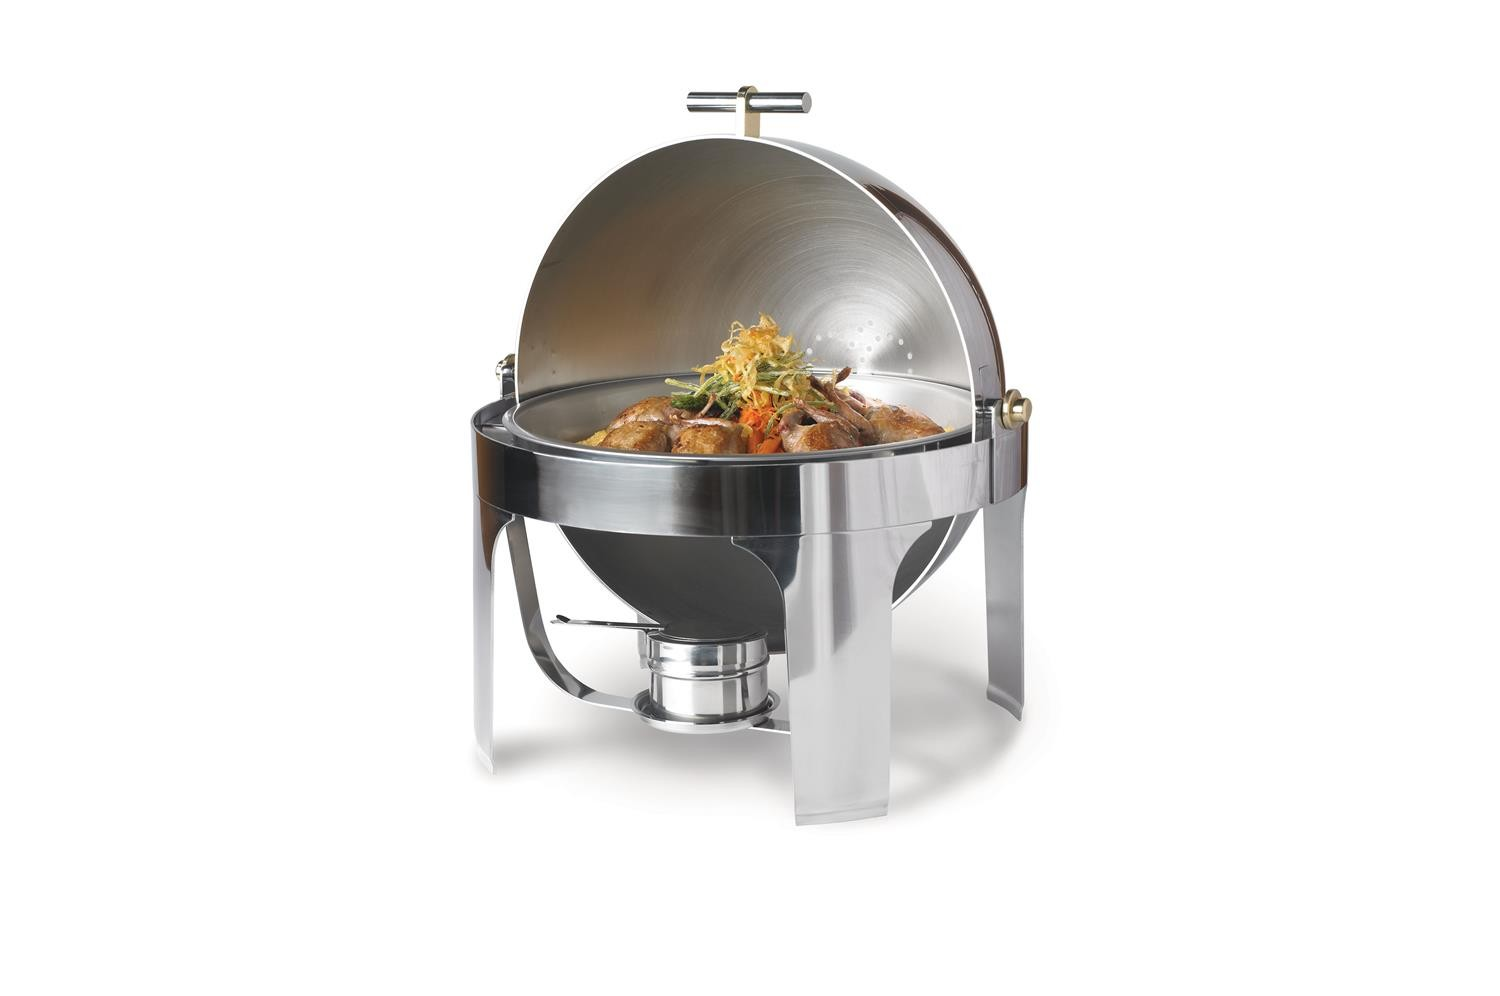 Vollrath 46070 New York New York Round Roll Top Chafer with Brass Trim 6 Qt.